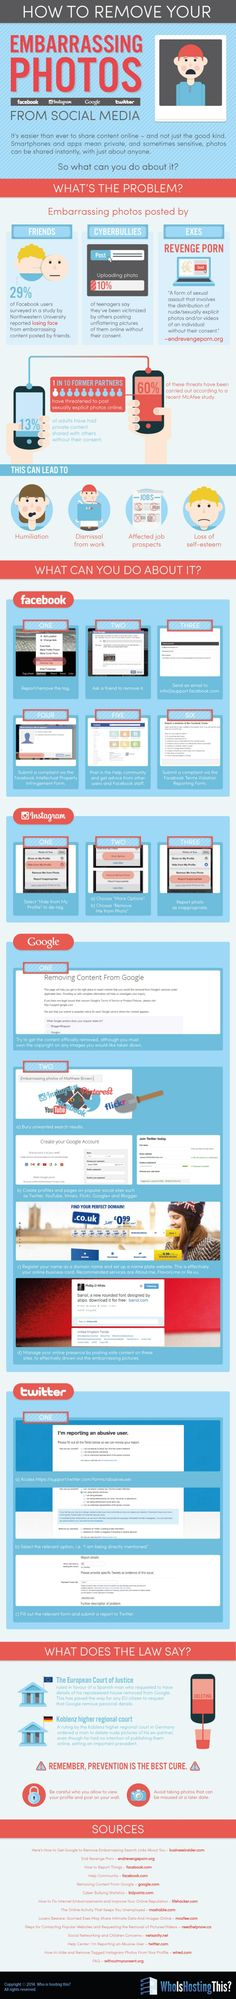 How To Remove Your Embarrassing Photos From #SocialMedia - #Facebook, #Twitter, #Google #Instagram - #infographic